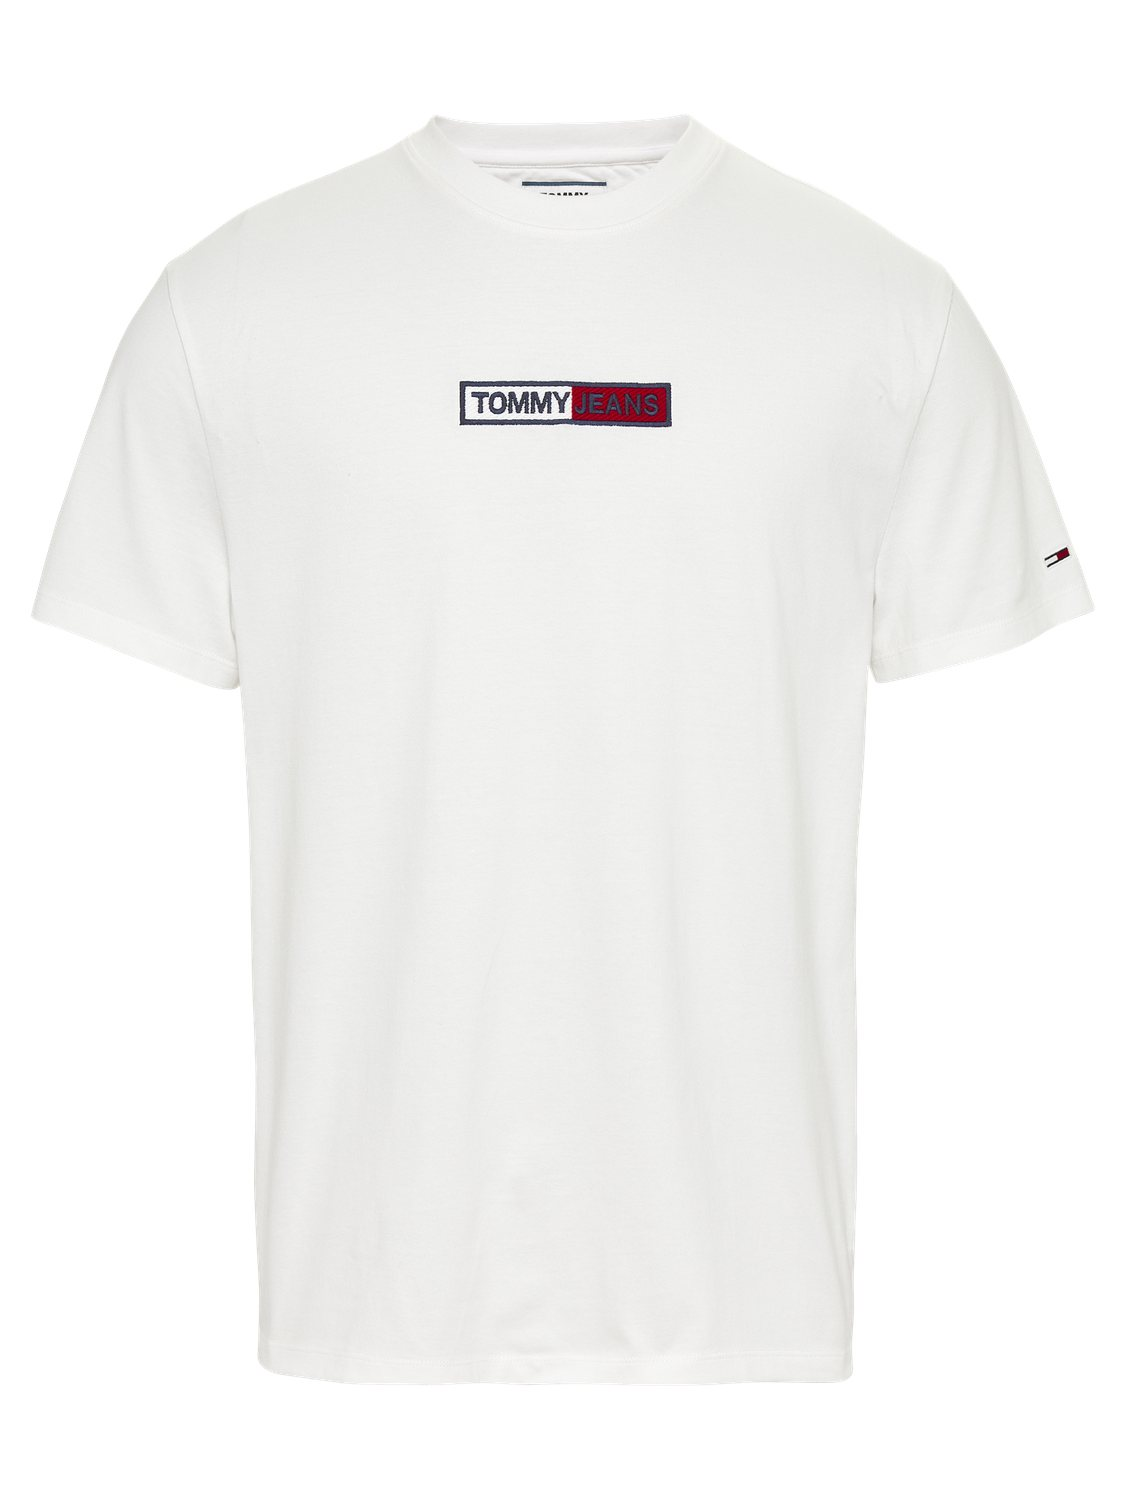 TOMMY HILFIGER - T-shirt Box Logo White | GATE 36 Hobro